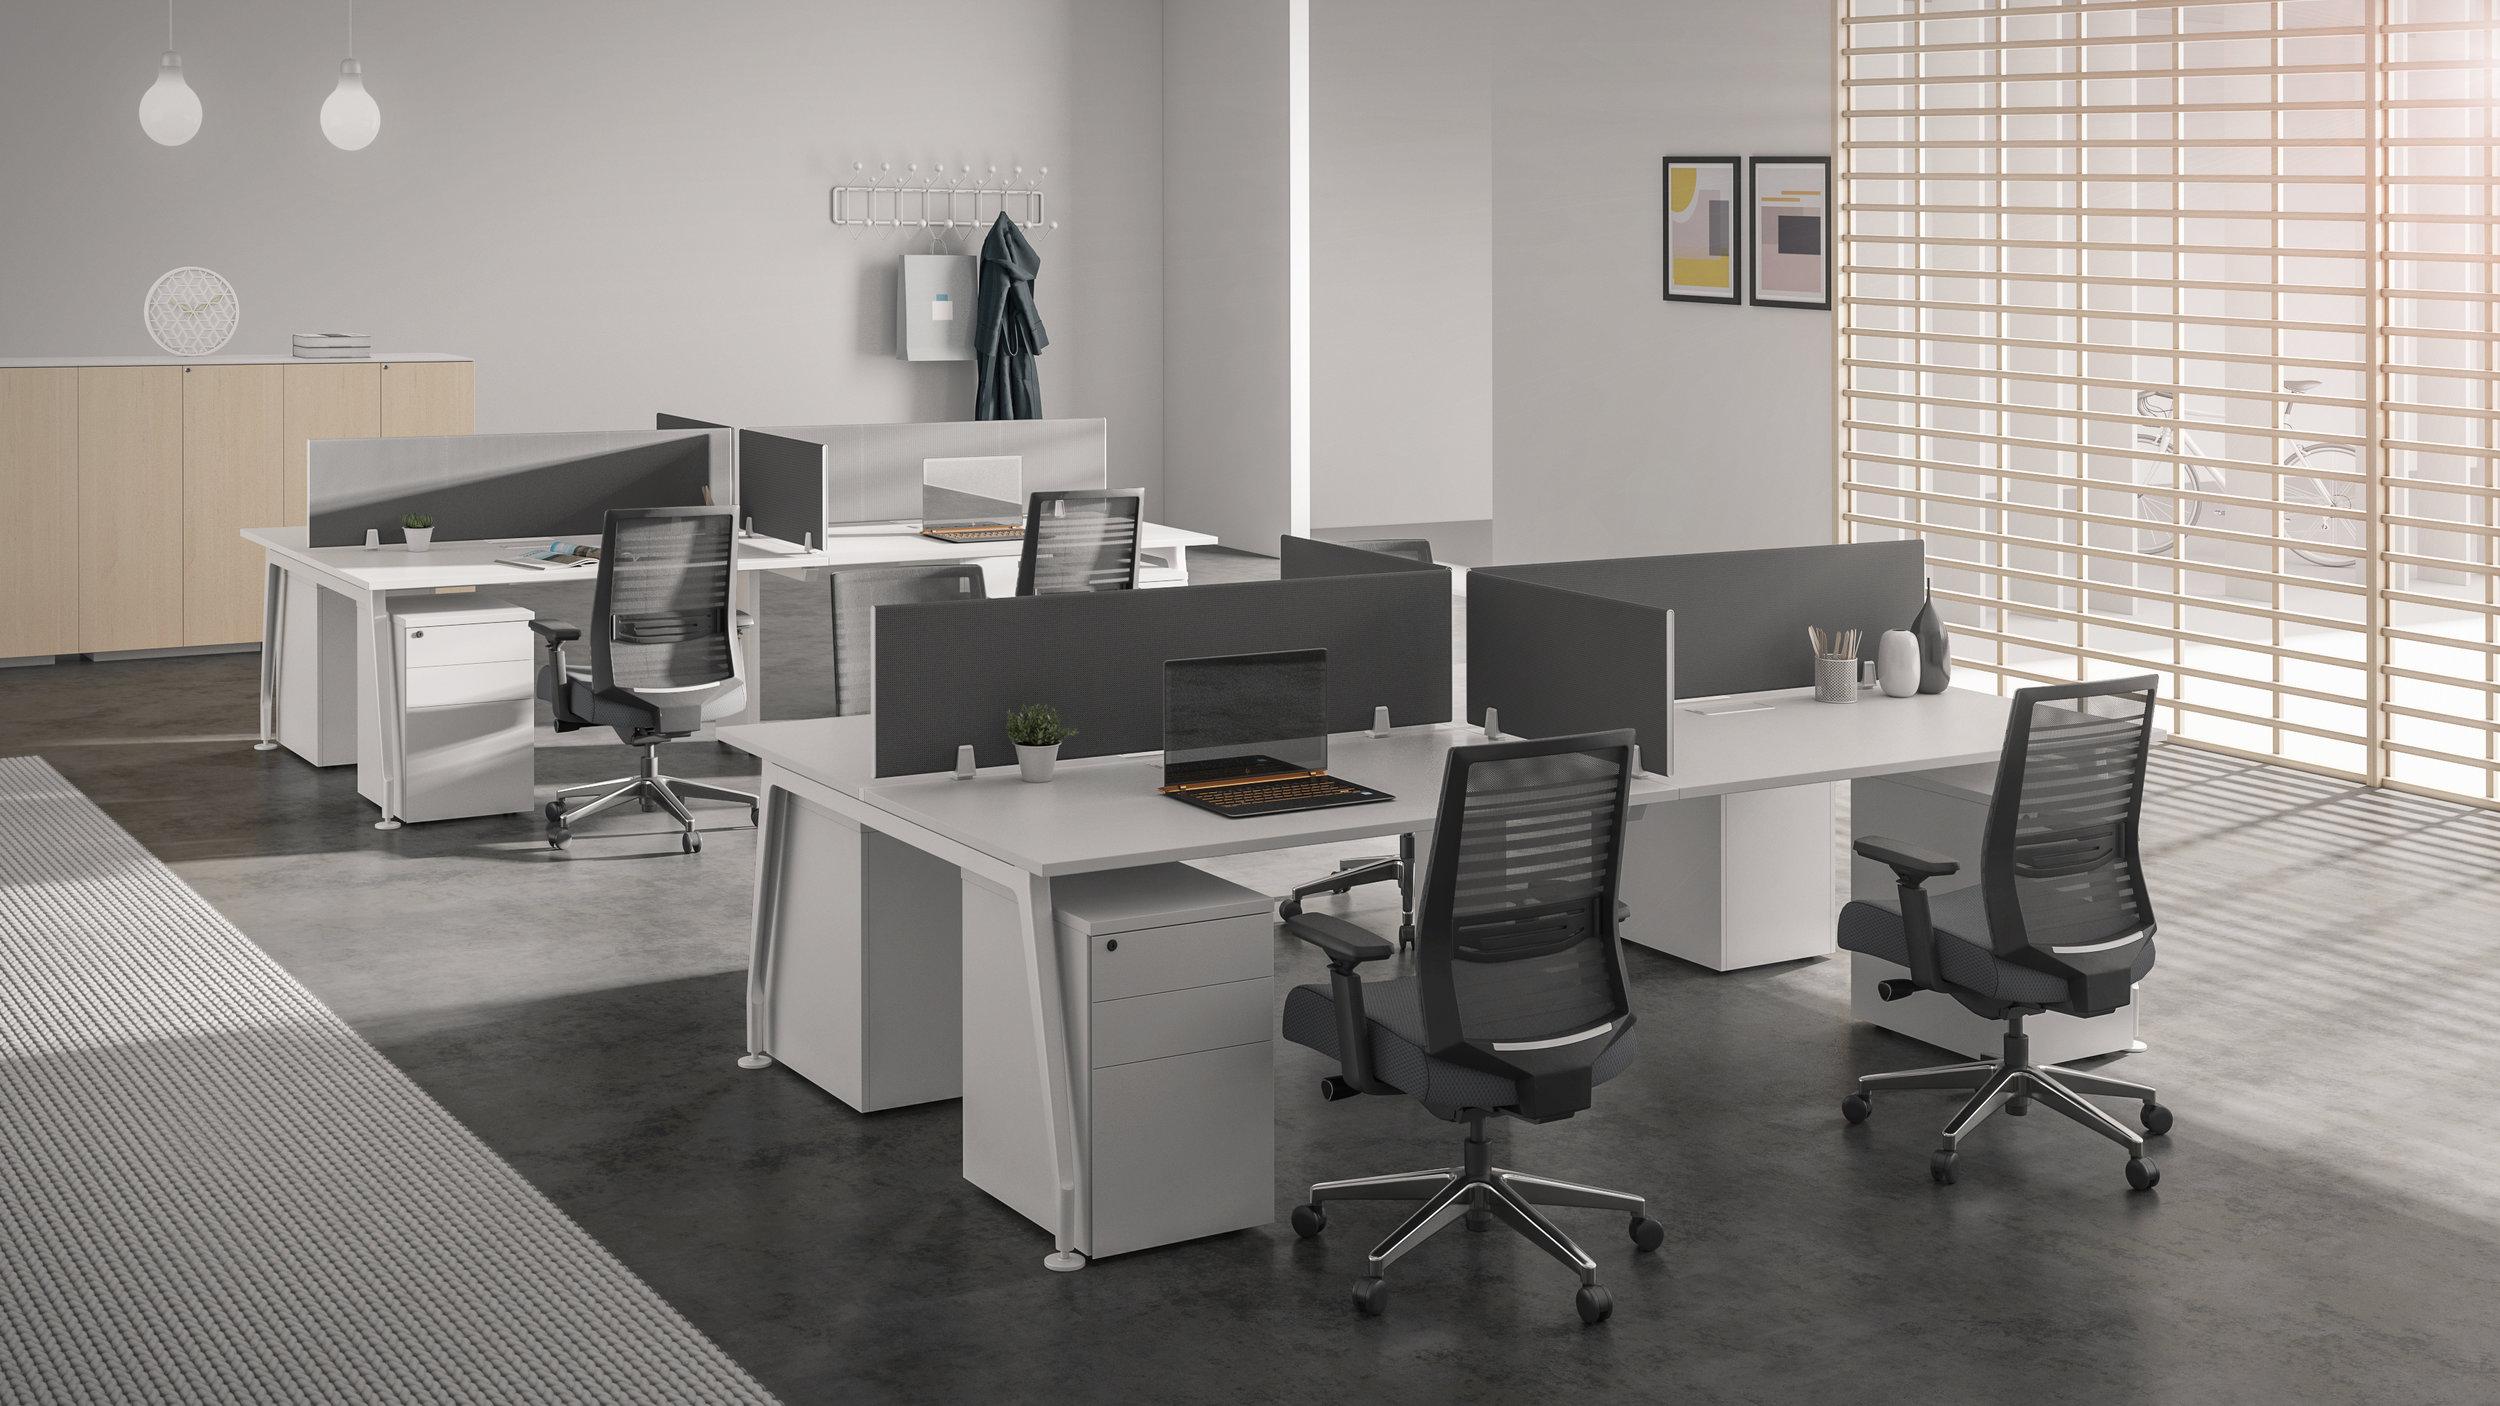 Smarti ST ergonomic task seating